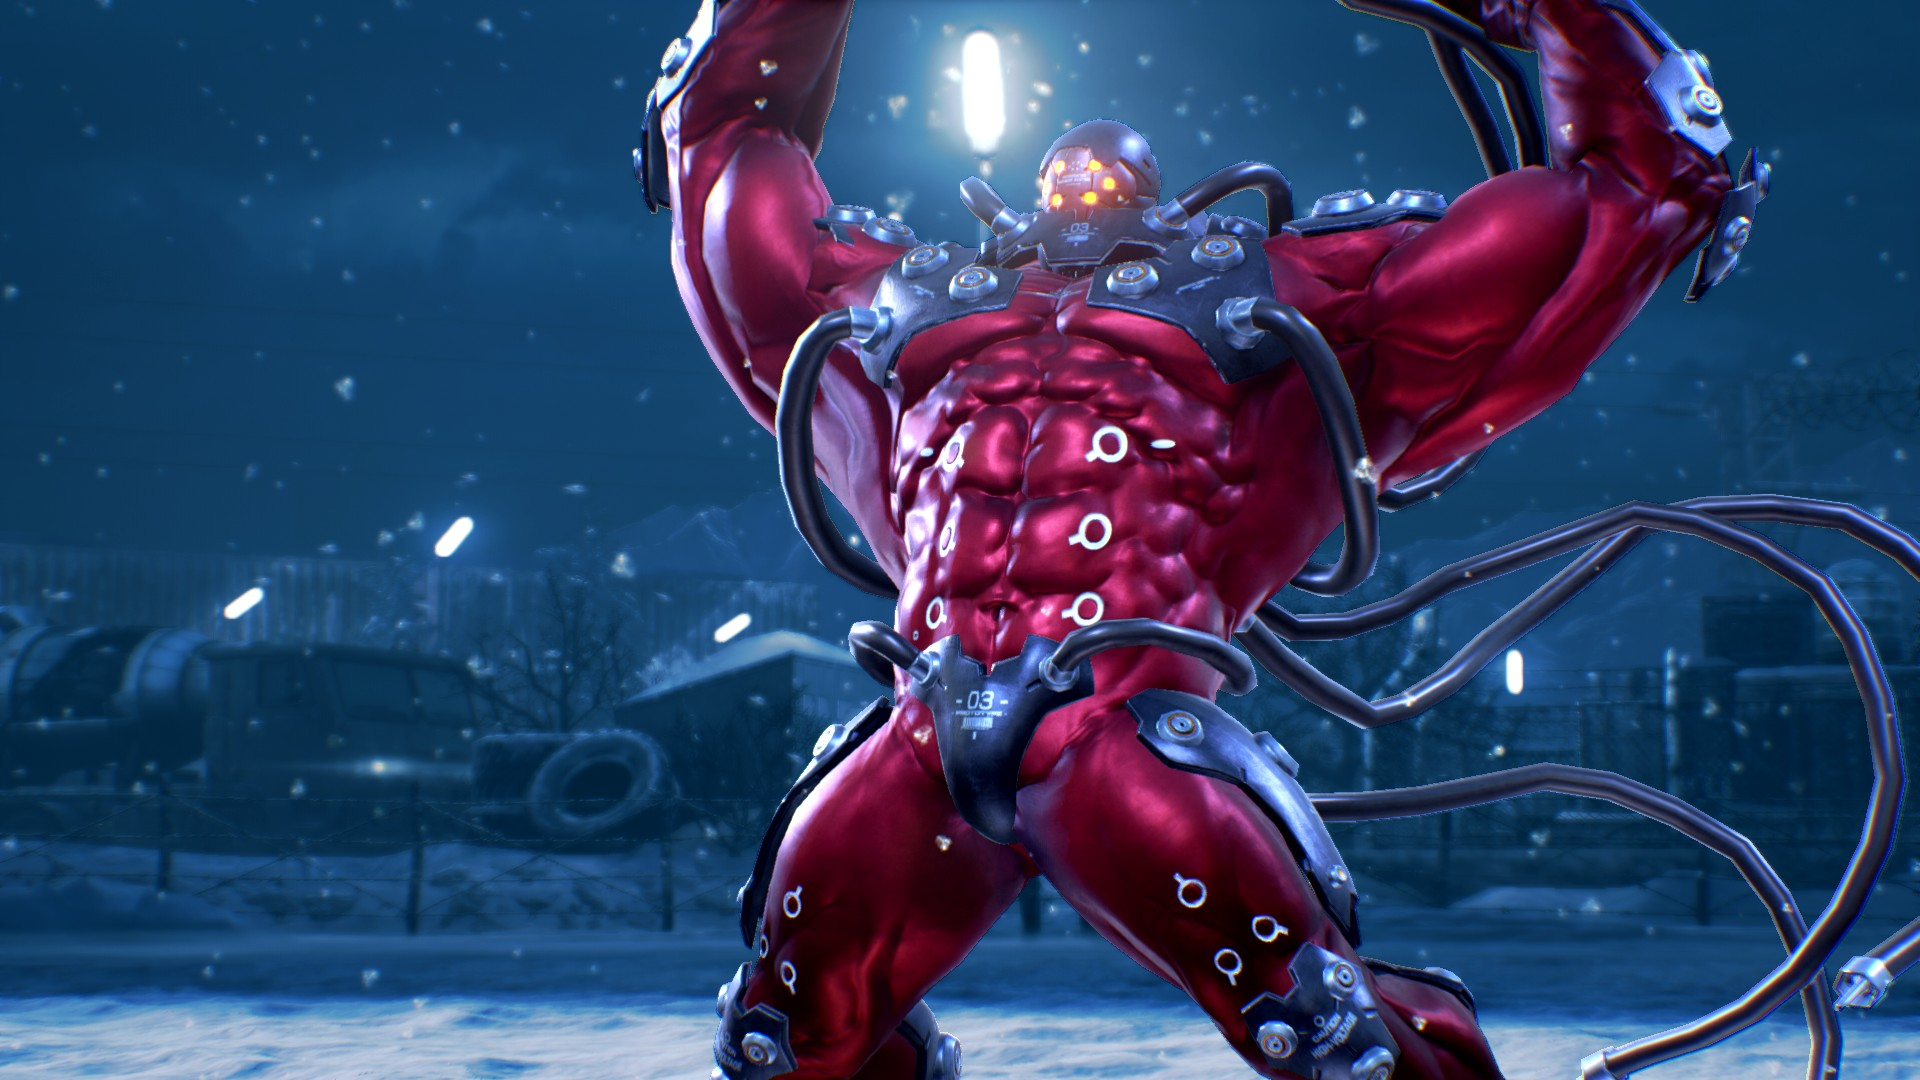 Tekken 7 For Pc And Ps4 Xbox One Gets New Full Hd 1080p Screenshots Showing The Fighters